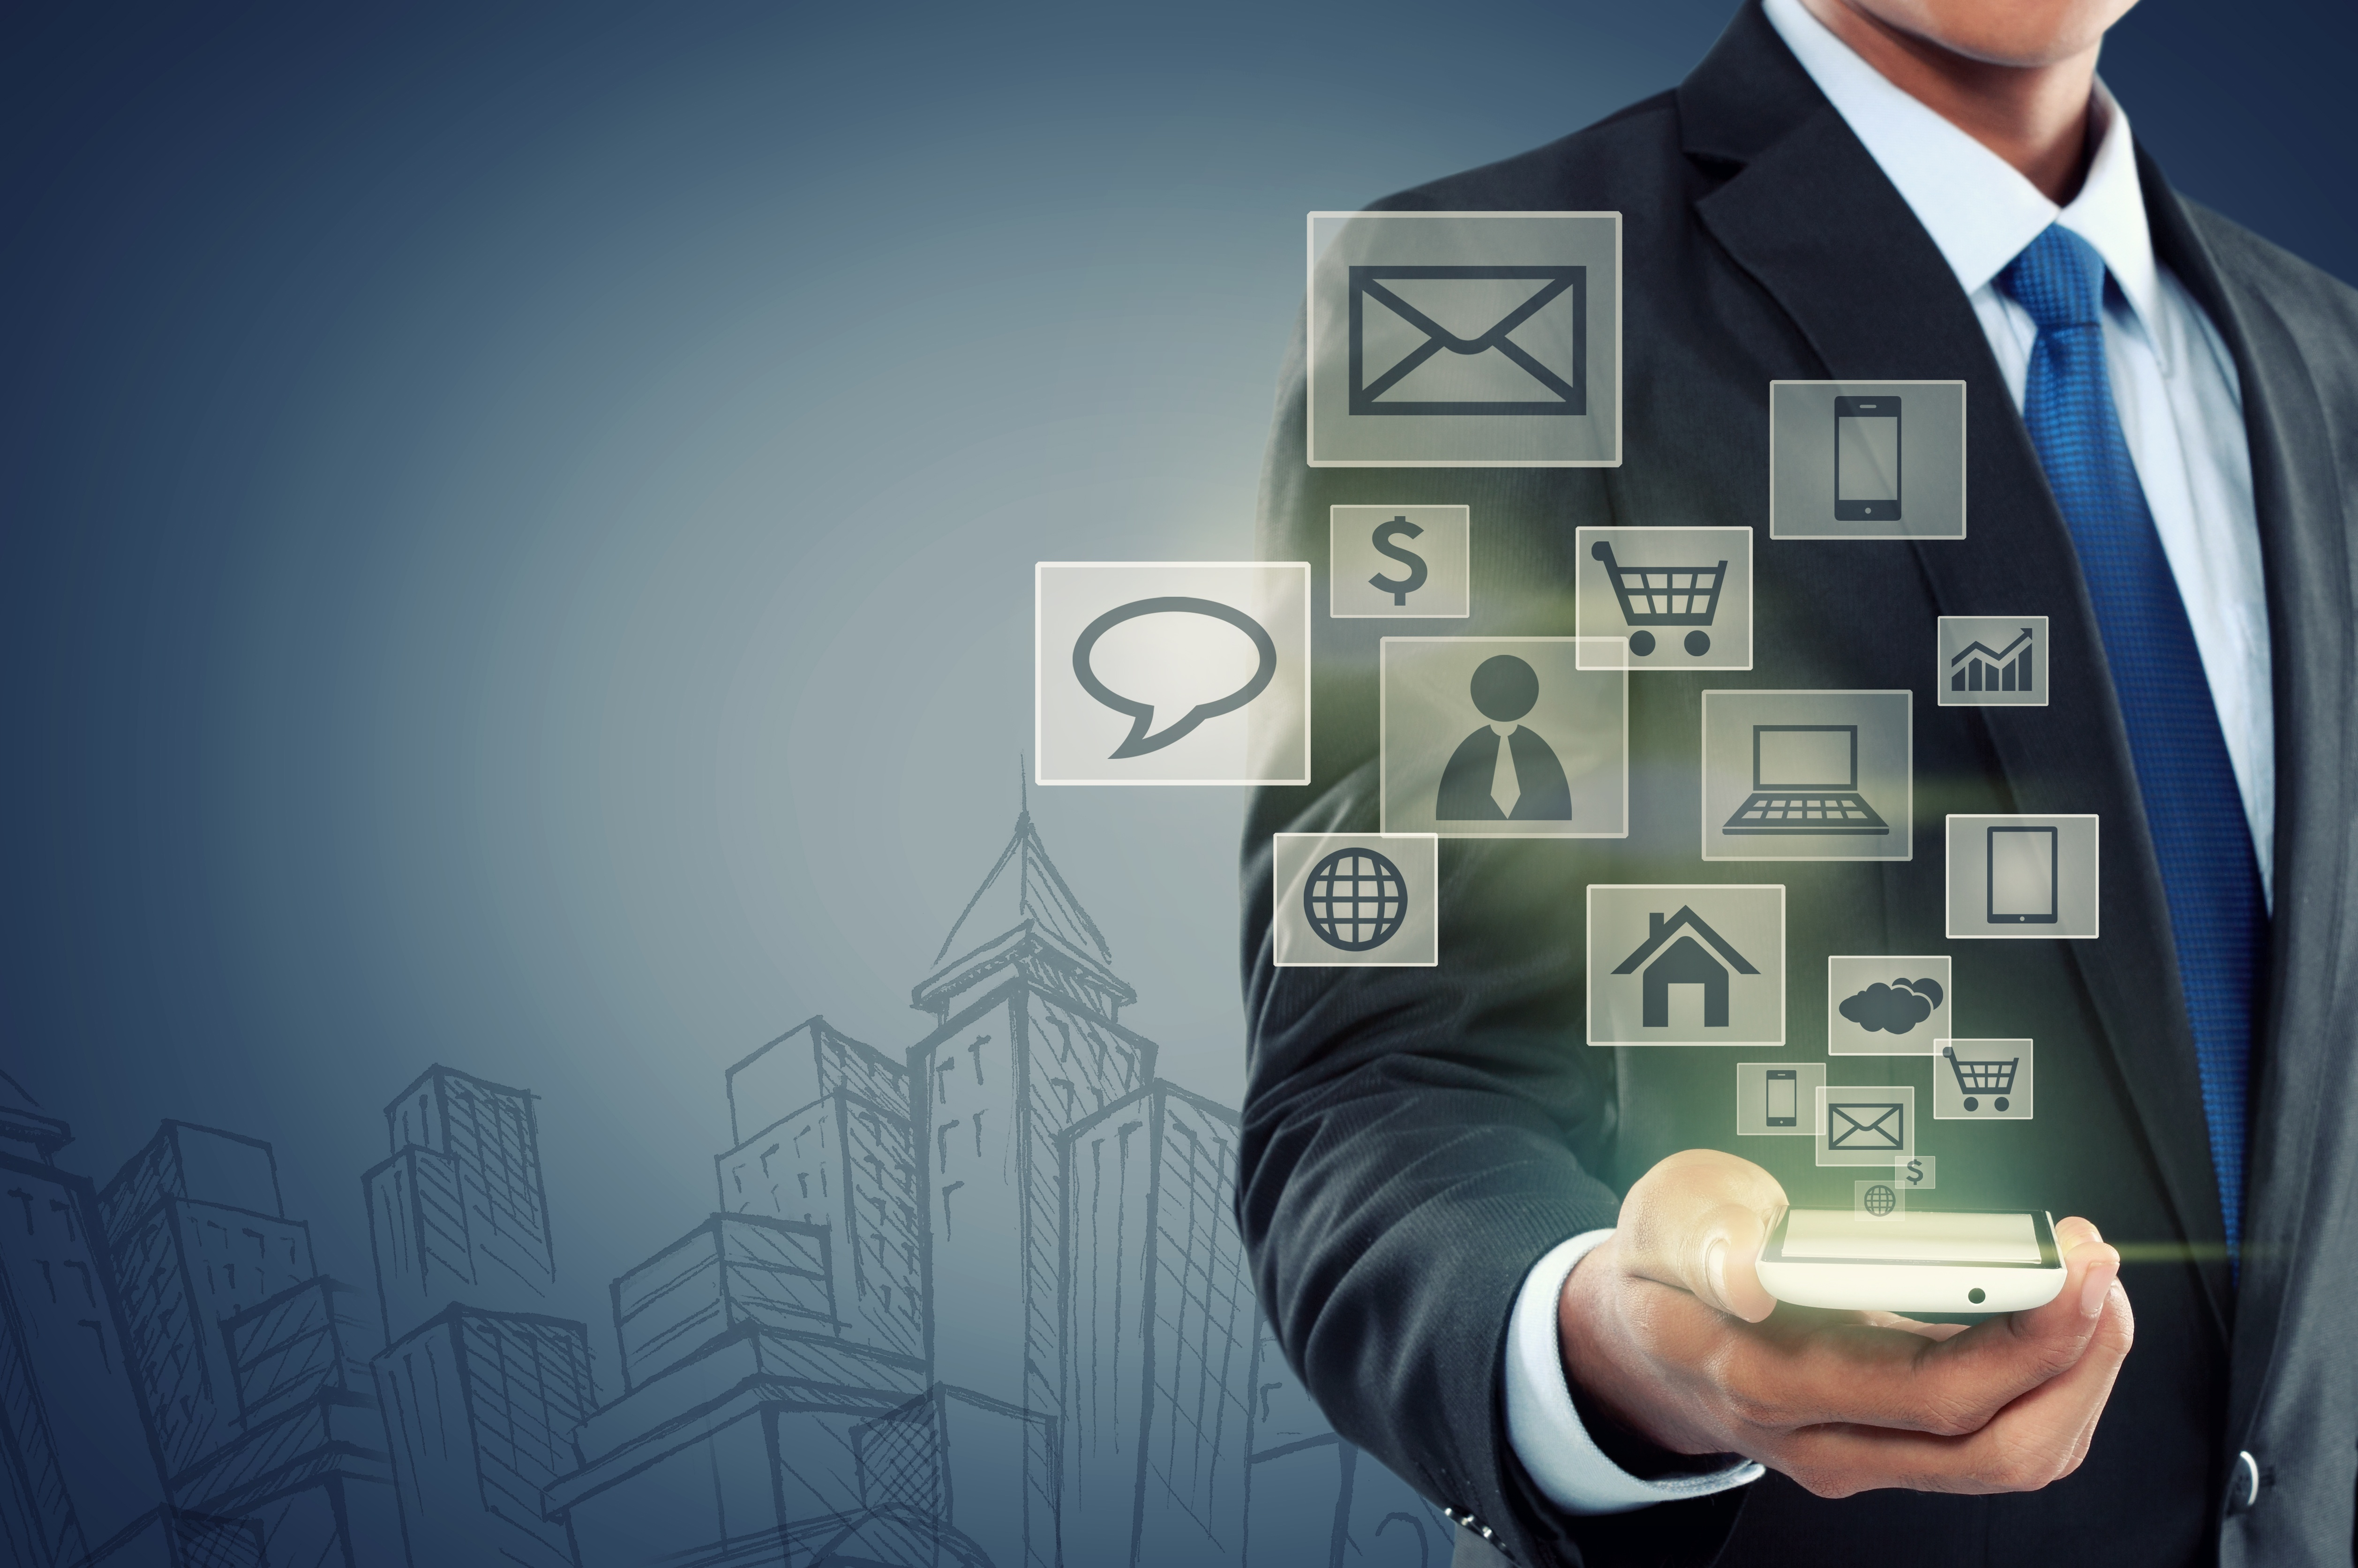 Deliver exceptional user experience across devices to Transform CX